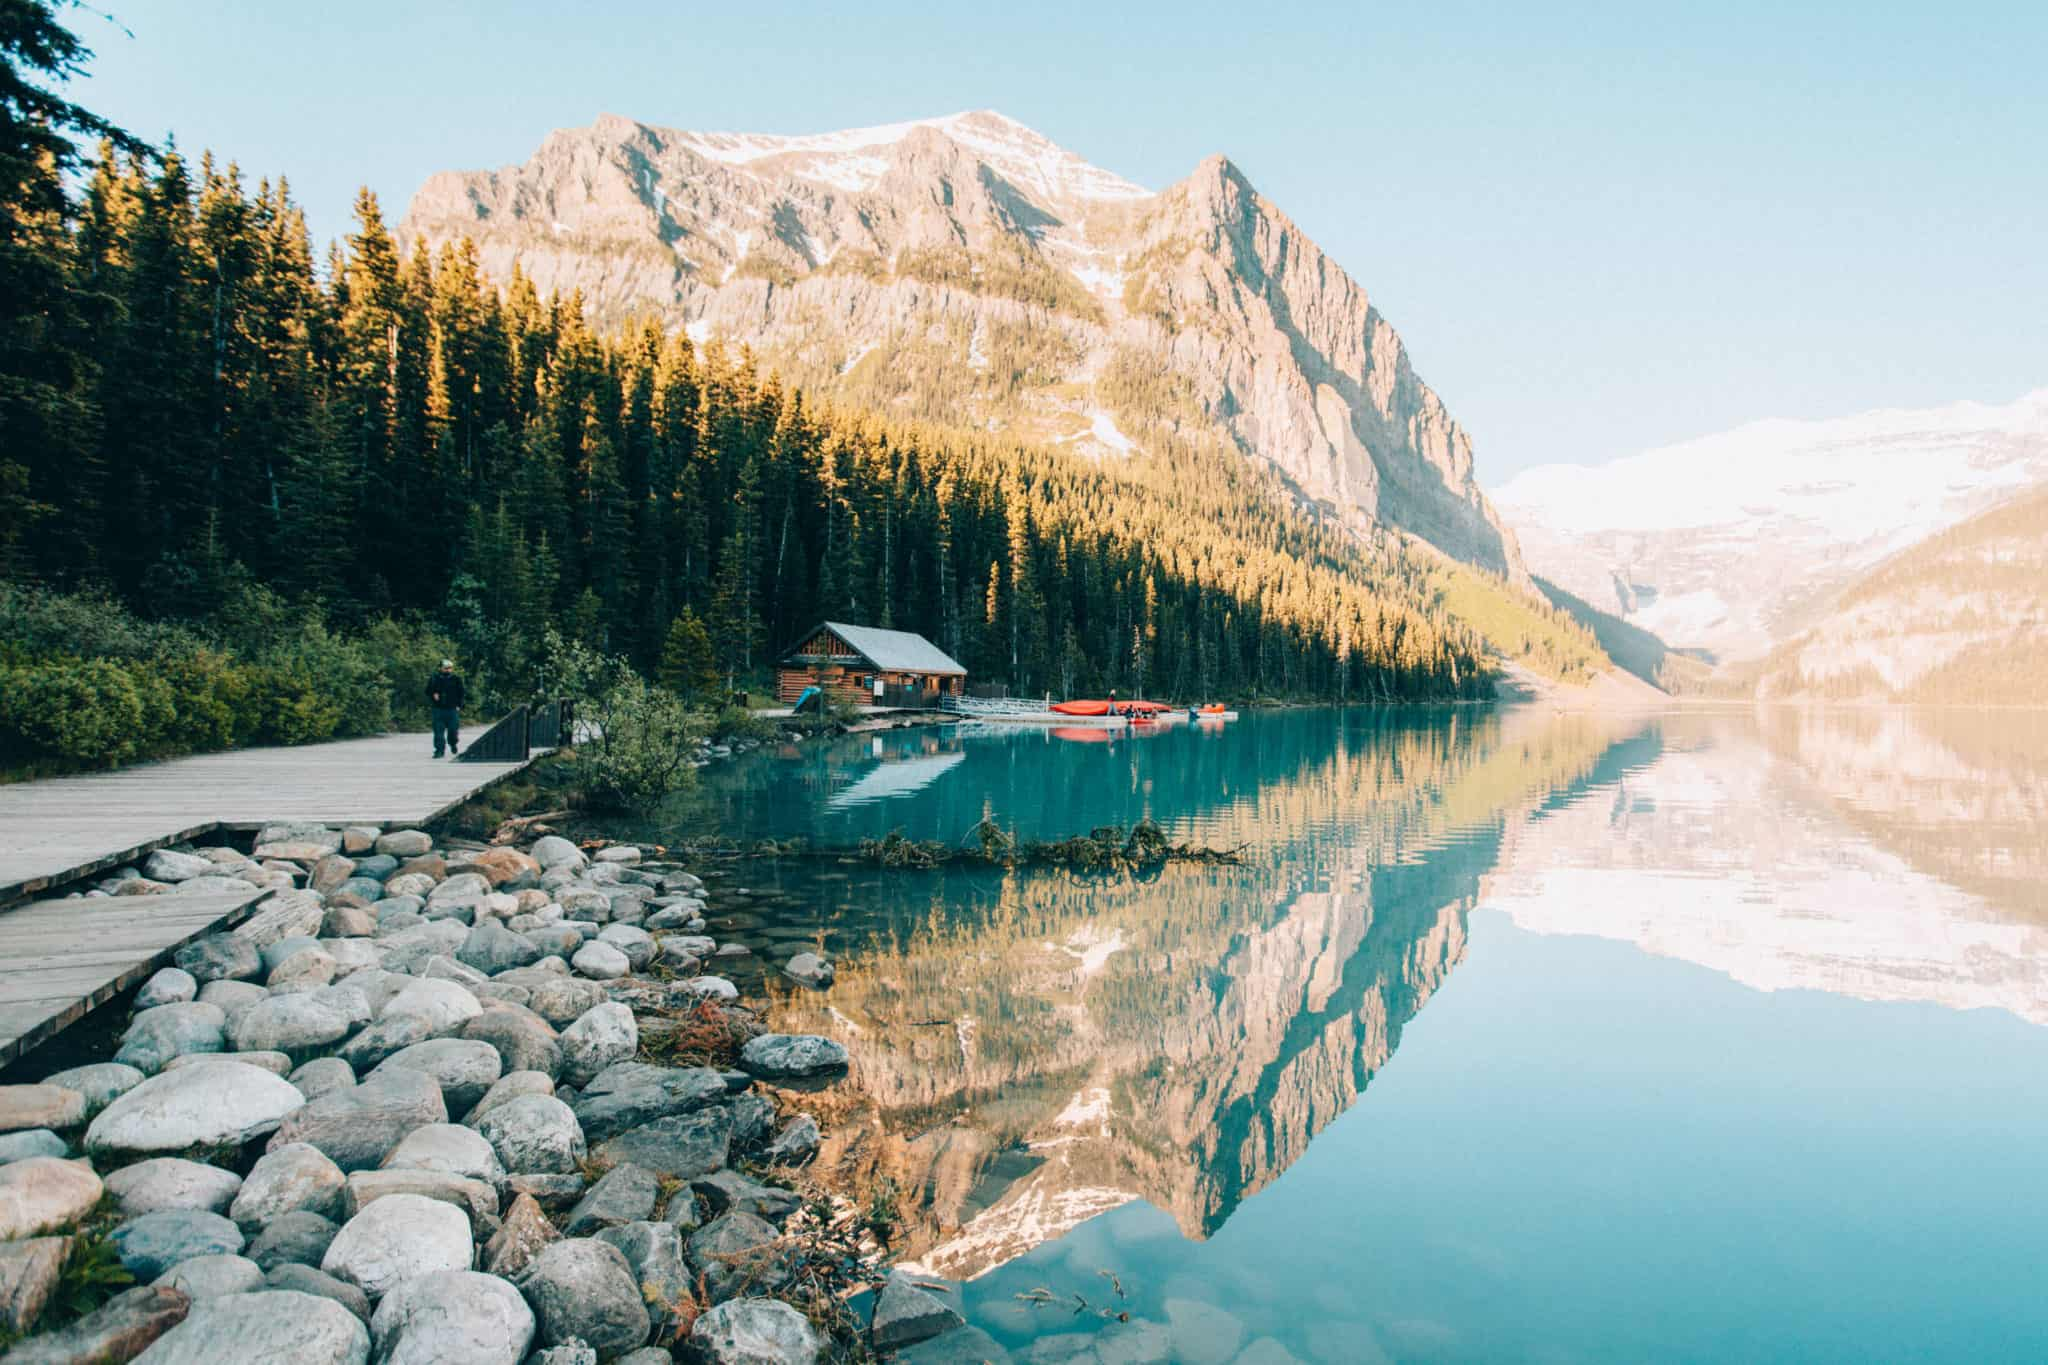 Best Photo Spots In Banff National Park - Lake Louise